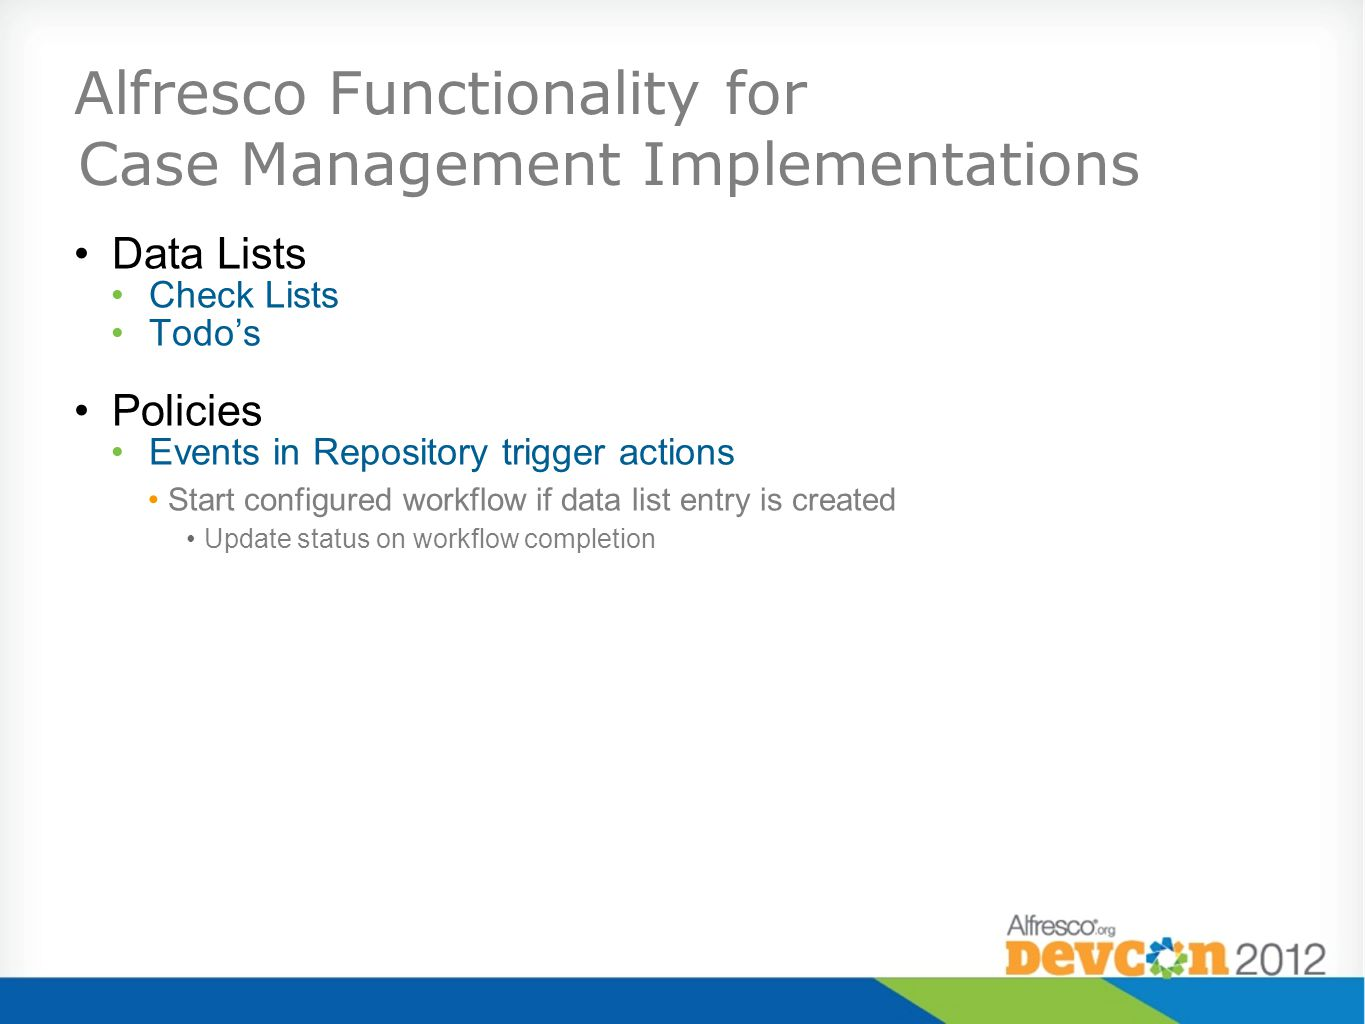 Alfresco Functionality for Case Management Implementations